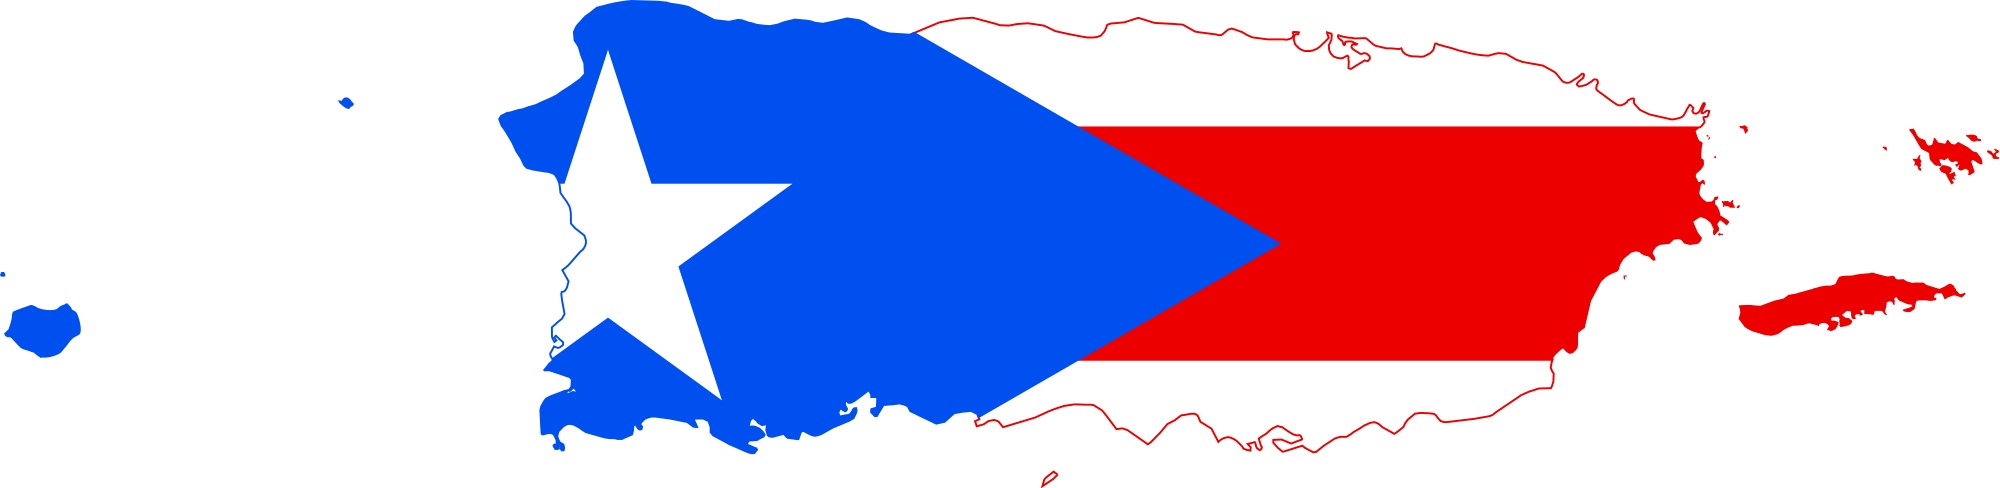 Puerto rico map png. File flag of svg